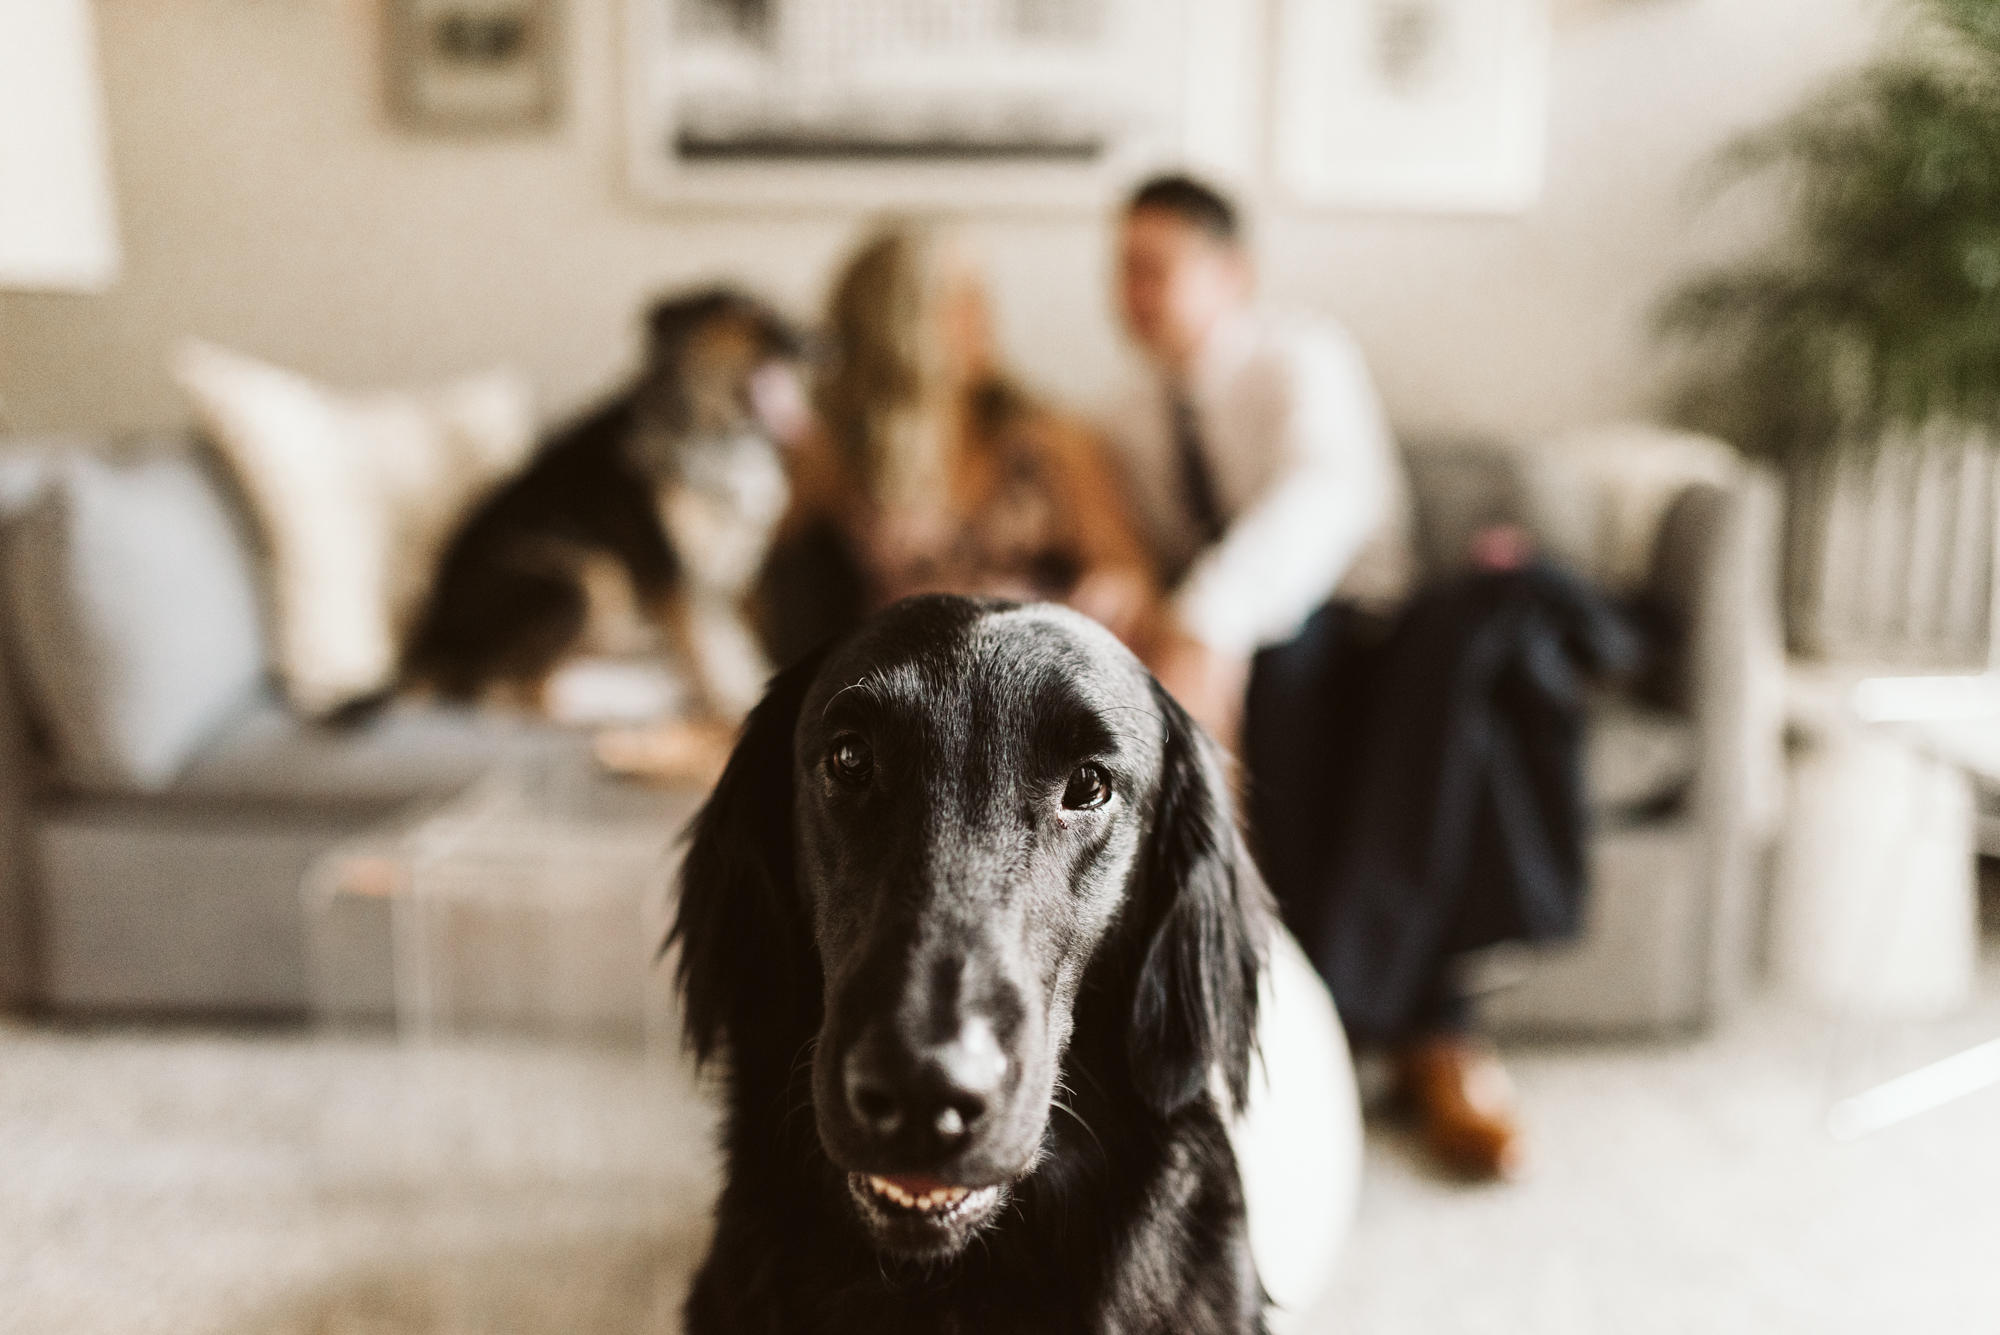 Pop-up Ceremony, Outdoor Wedding, Casual, Simple, Lake Roland, Baltimore, Maryland Wedding Photographer, Laid Back, Bride and Groom at Home with Dogs, Dog Portrait